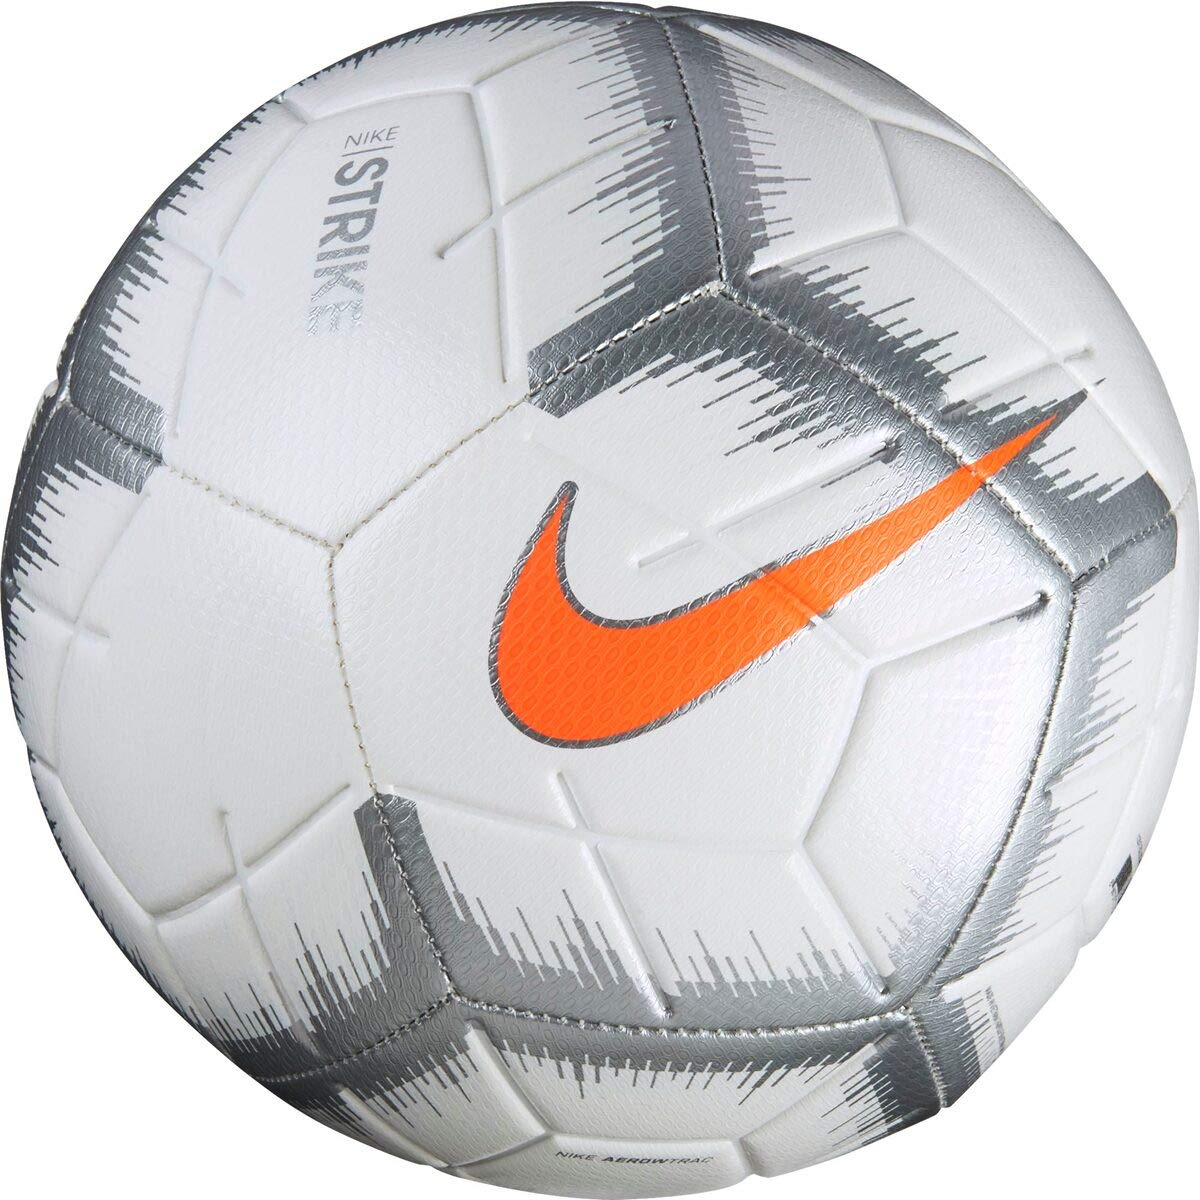 Amazon Com Nike Nk Skls Football Unisex Fussball Nk Skls